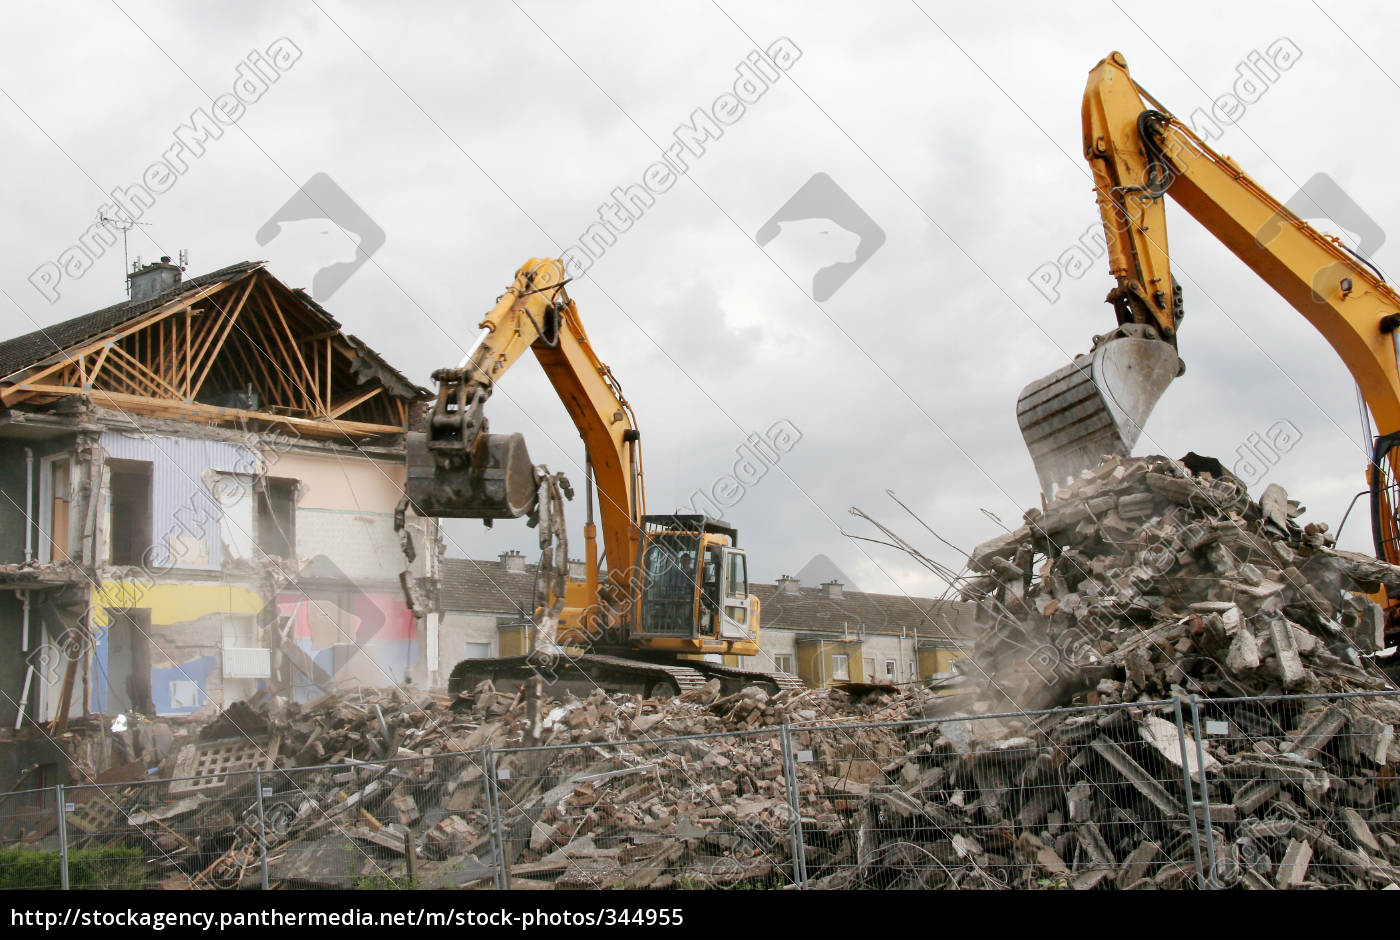 excavator, on, demolition, 1 - 344955